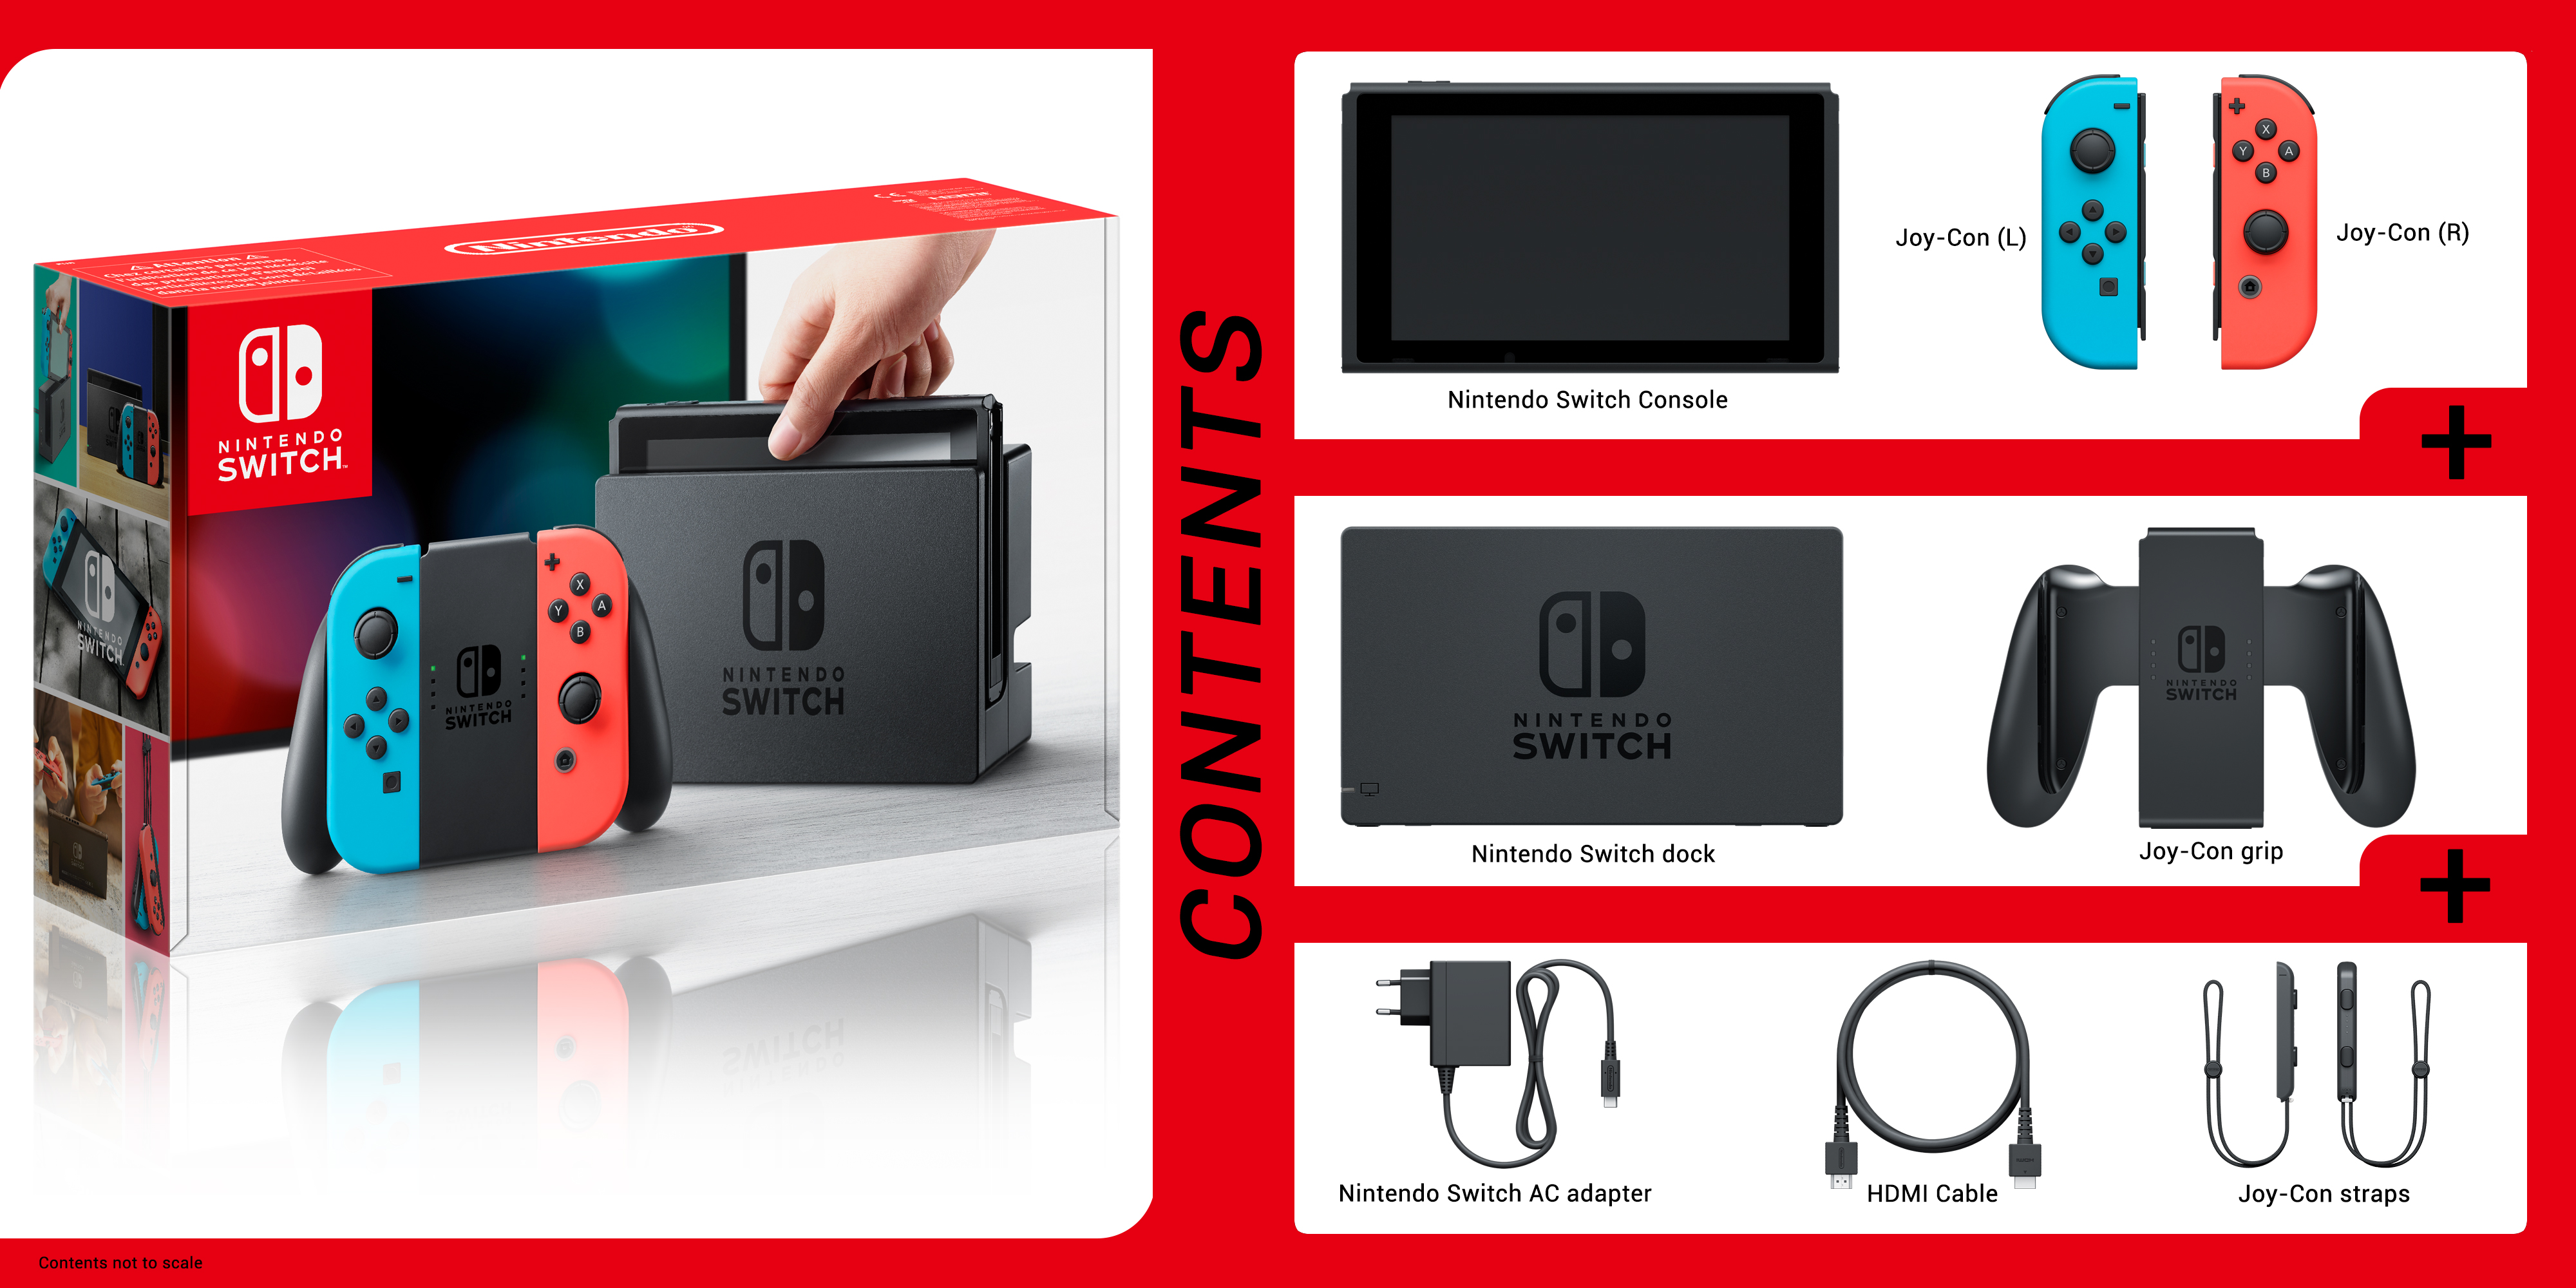 Announcing The Nintendo Switch Onelargeprawn Joy Con Strap Neon Yellow Will Be A Hyrid Home And Portable Console With Built In Screen Detachable Controllers System Comes Dock That You Can